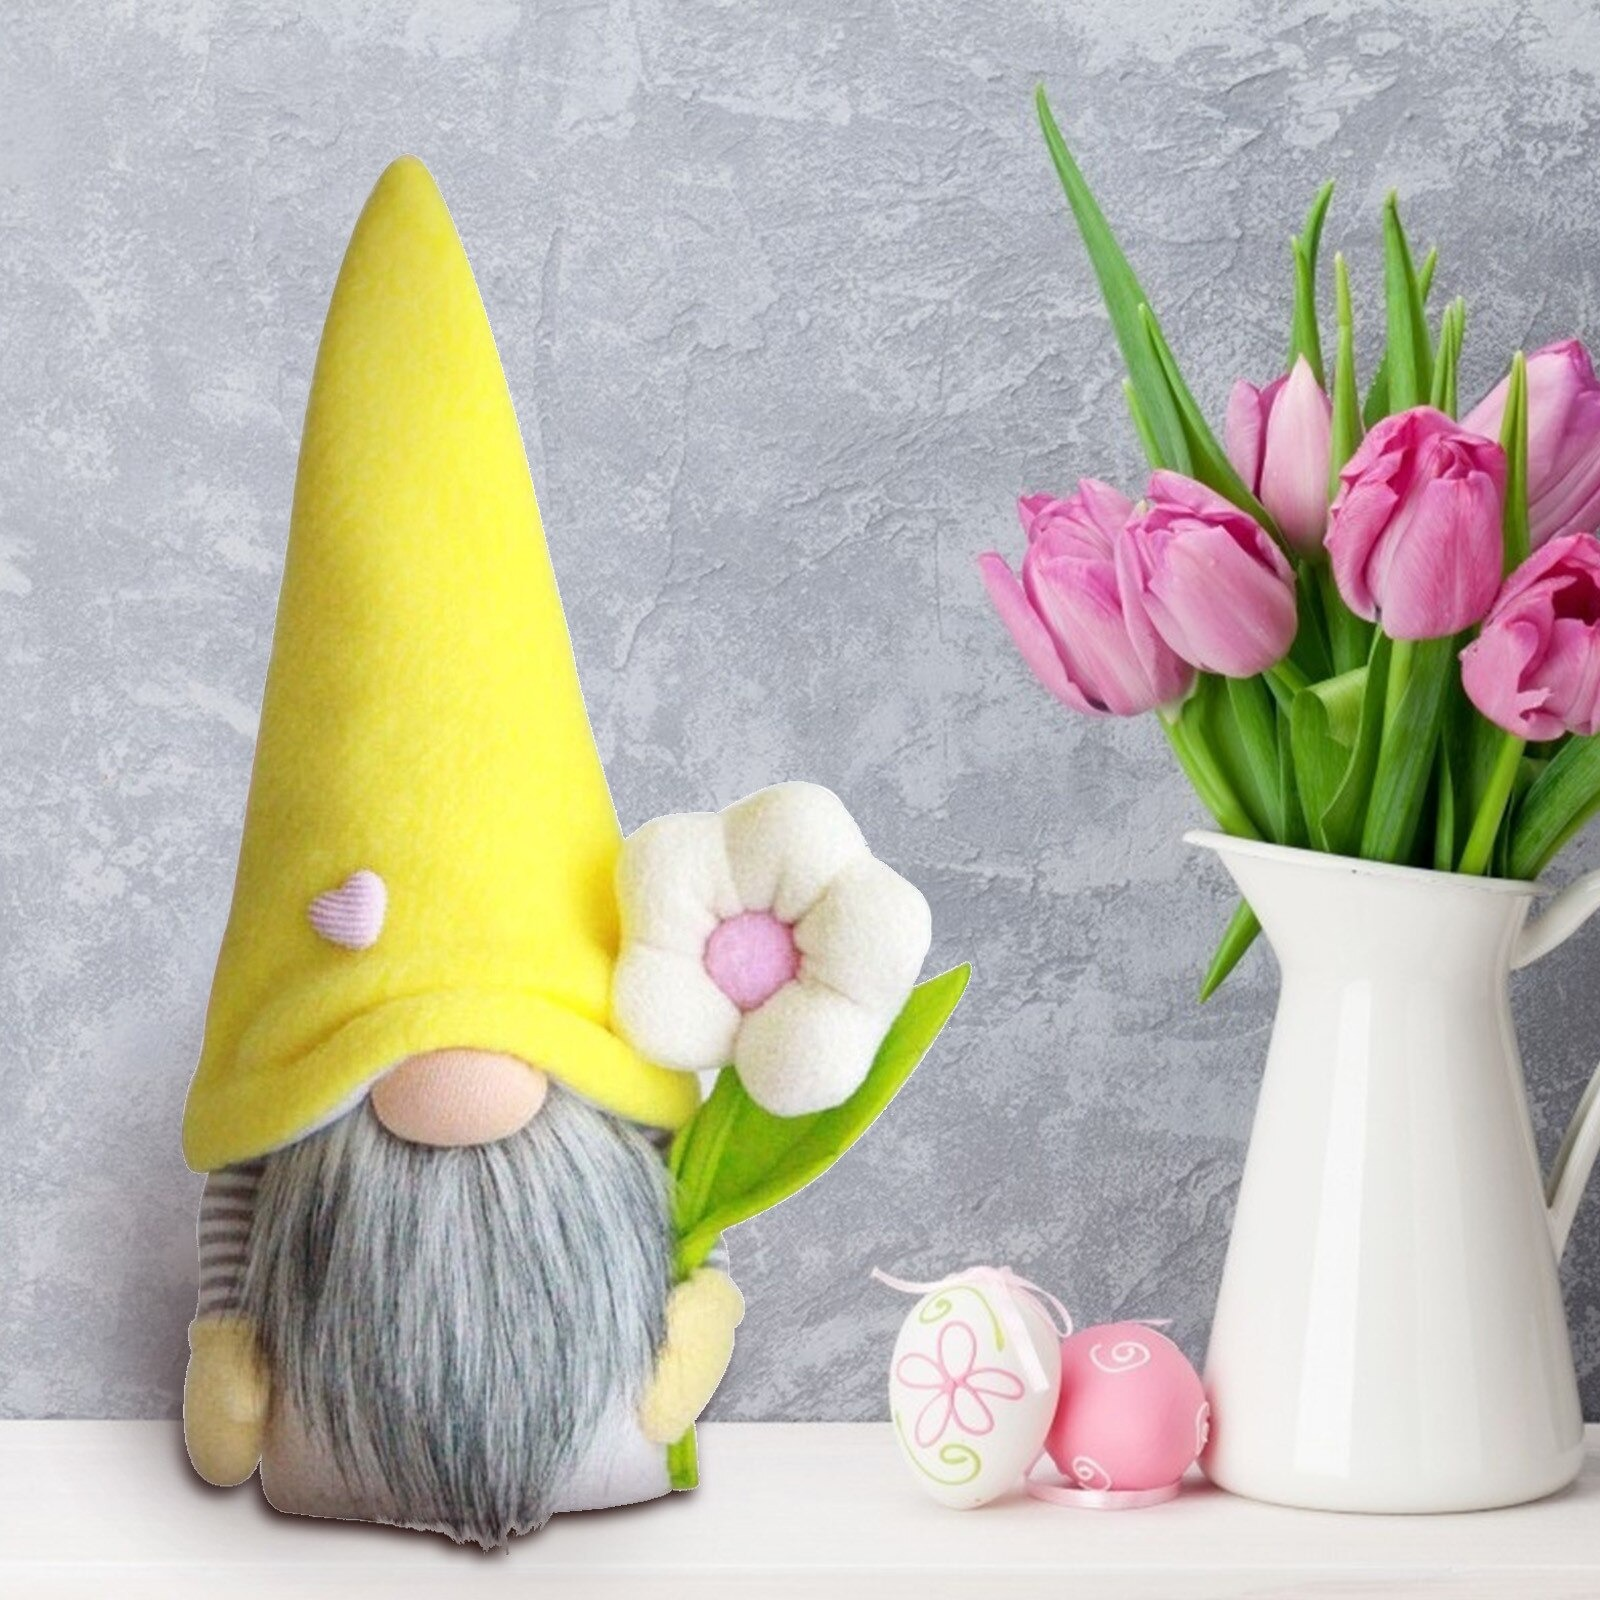 A_1-2-pcs-easter-standing-bunny-gnome-handm_variants-0